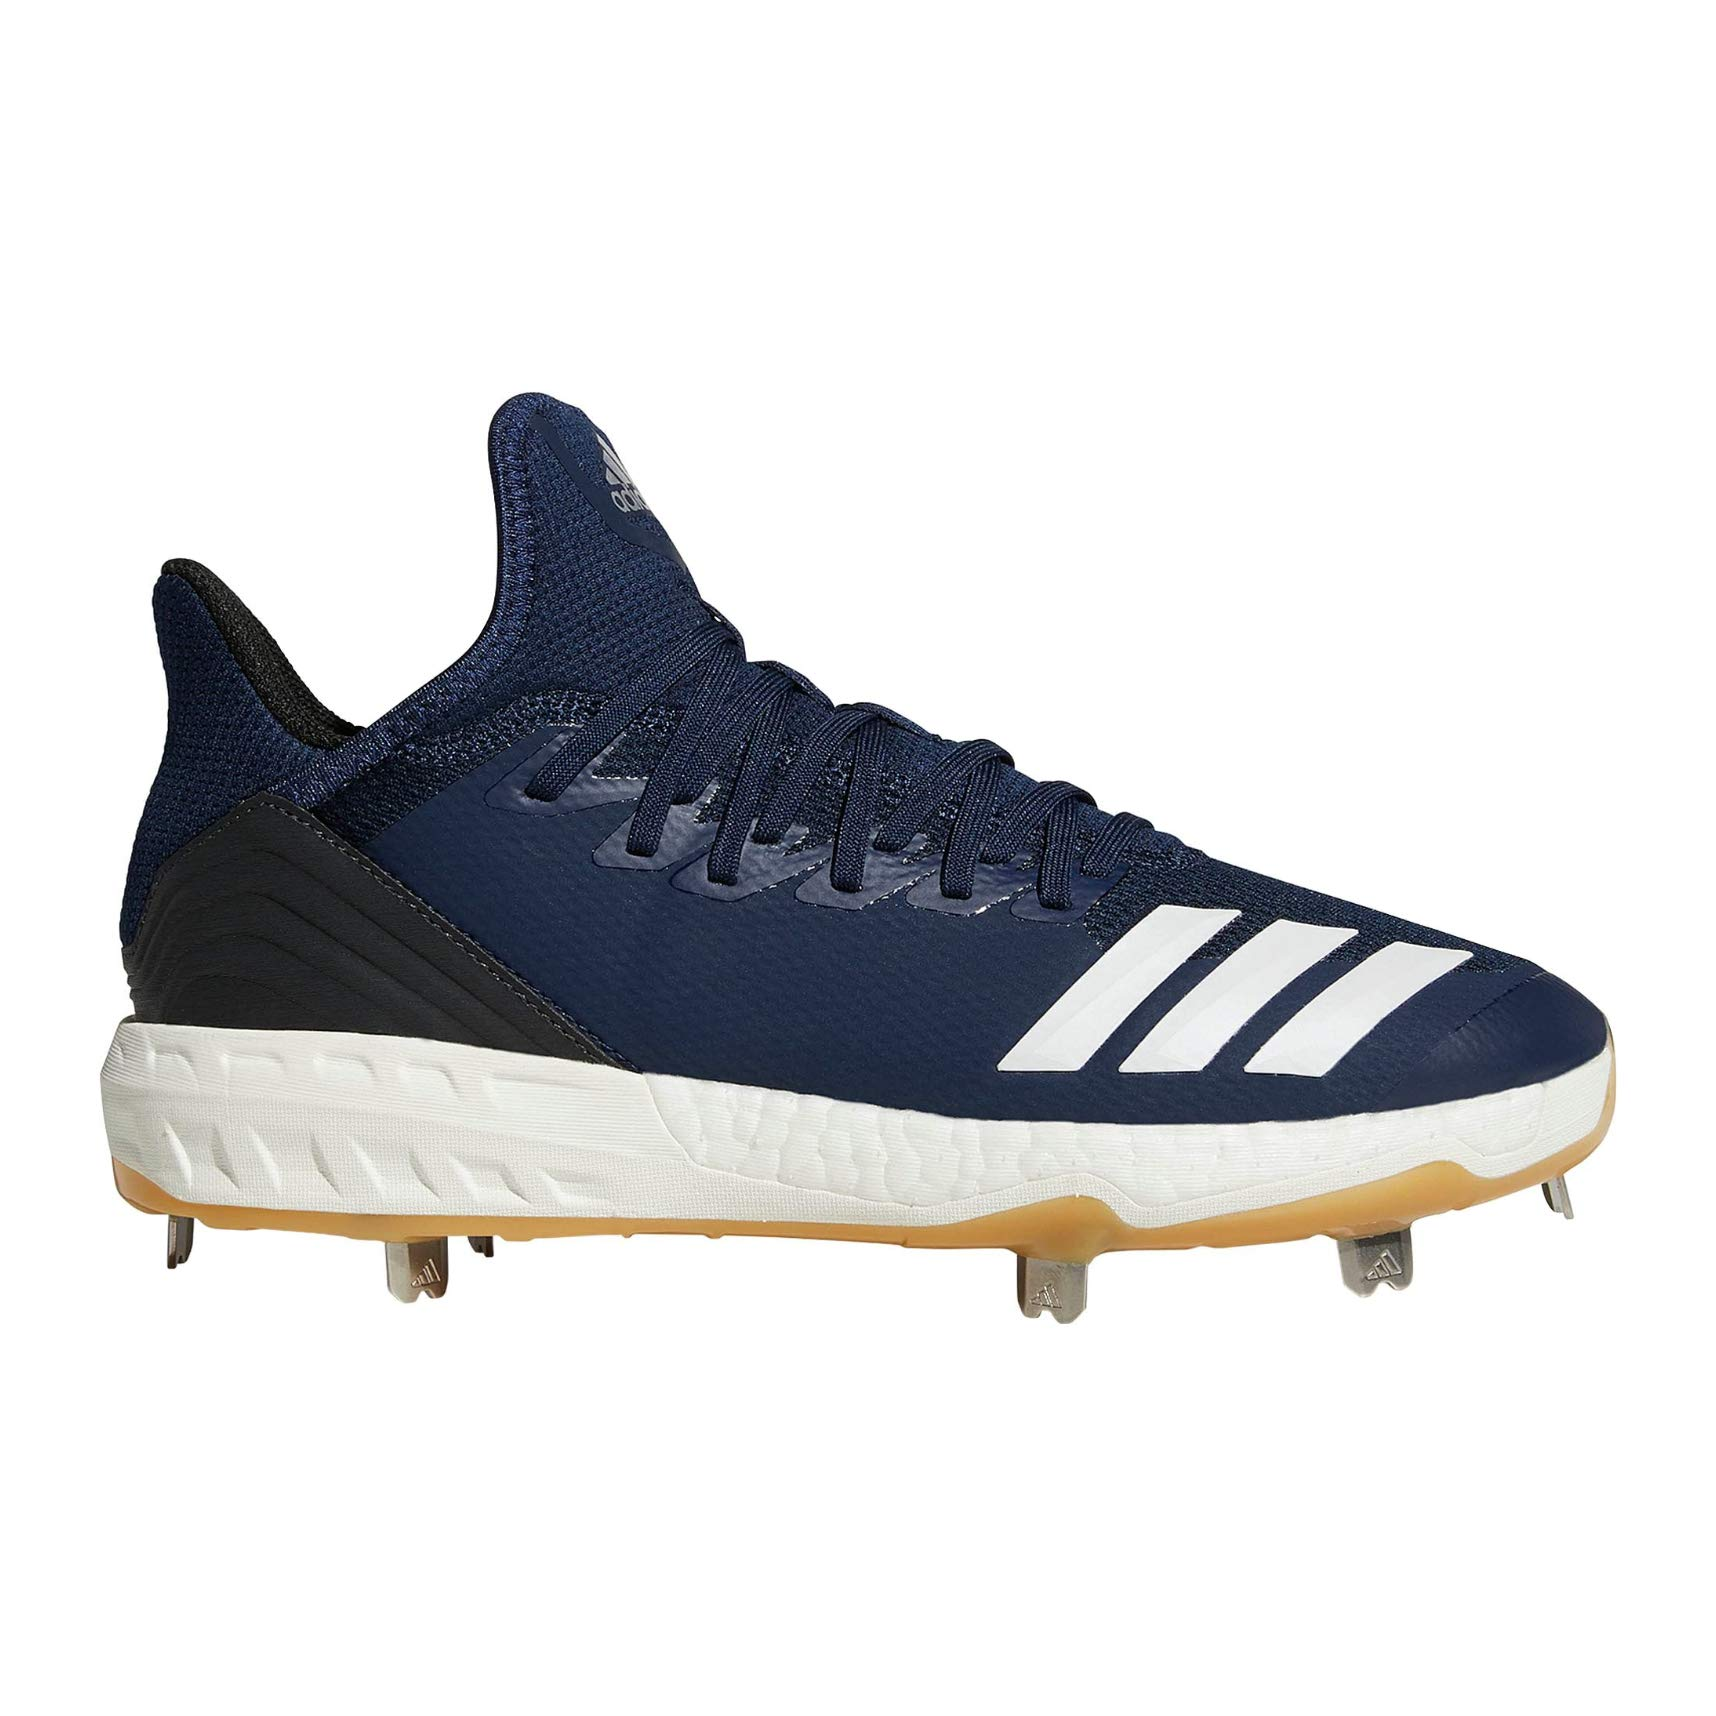 adidas Icon 4 Cleat - Men's Baseball 7 Collegiate Navy/White/Black by adidas (Image #1)